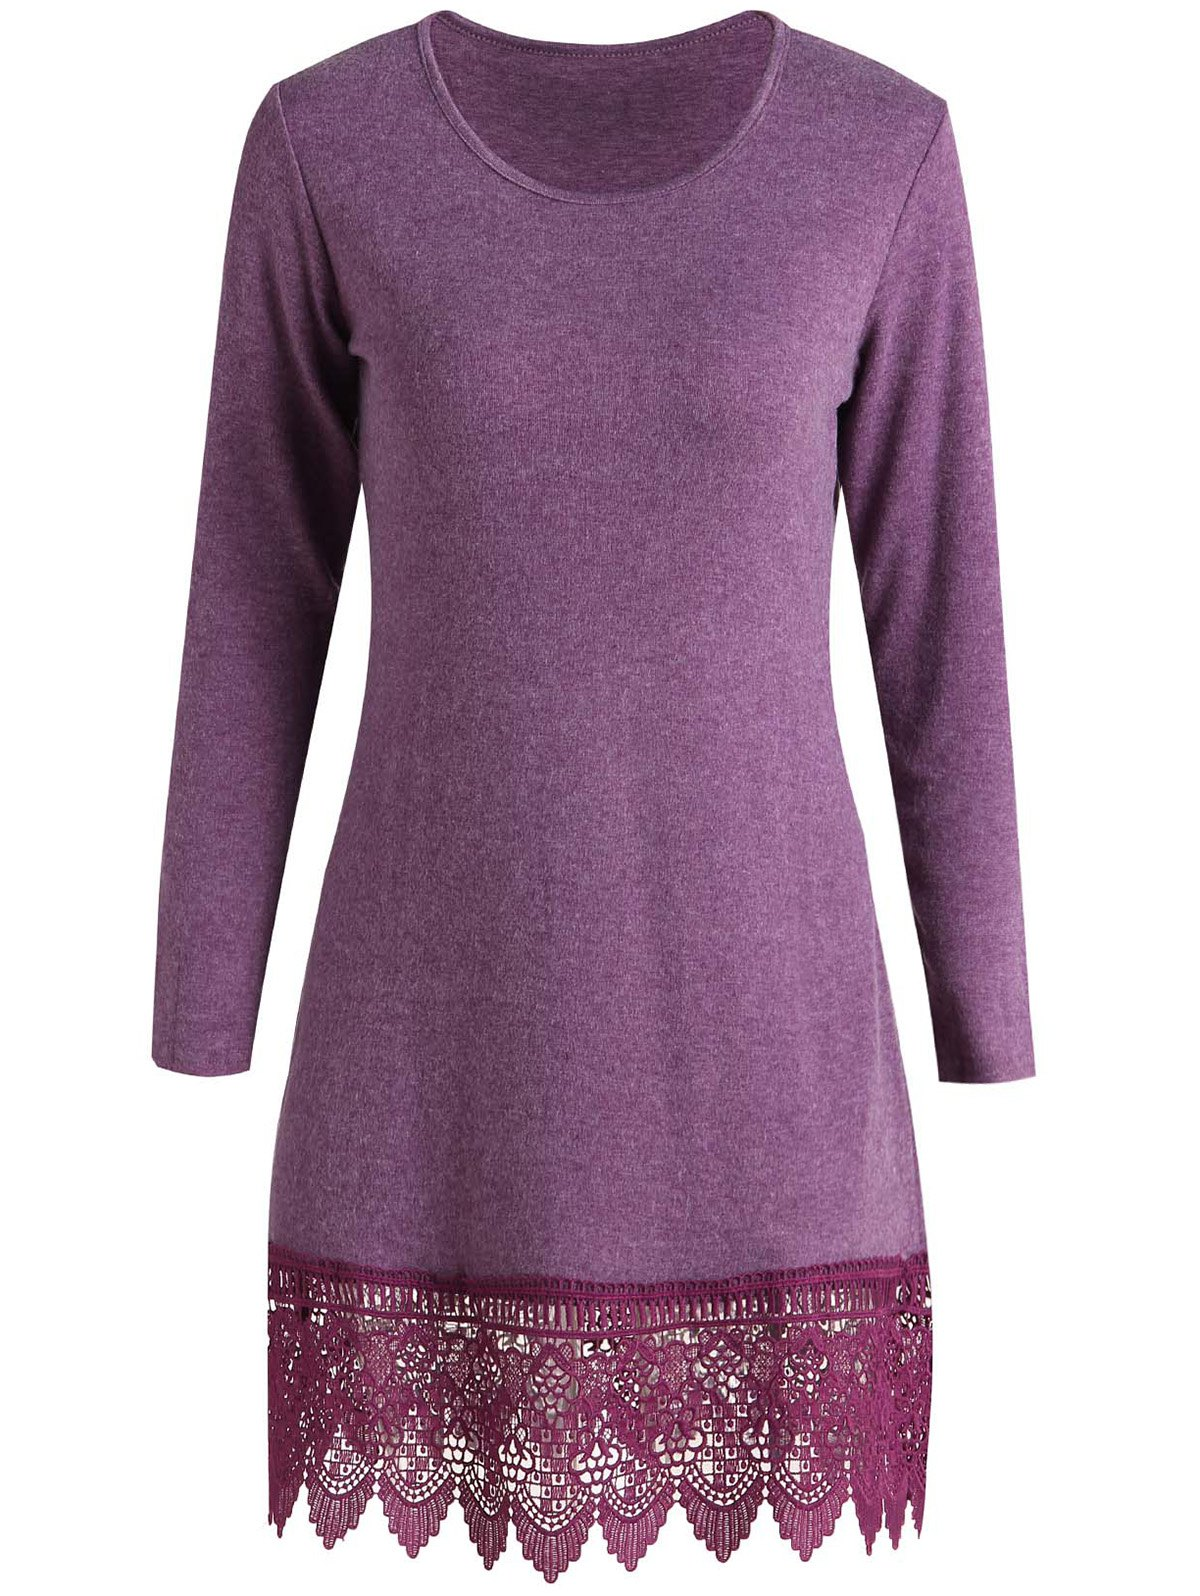 Stylish Scoop Neck Long Sleeve Laciness Solid Color Women's Dress